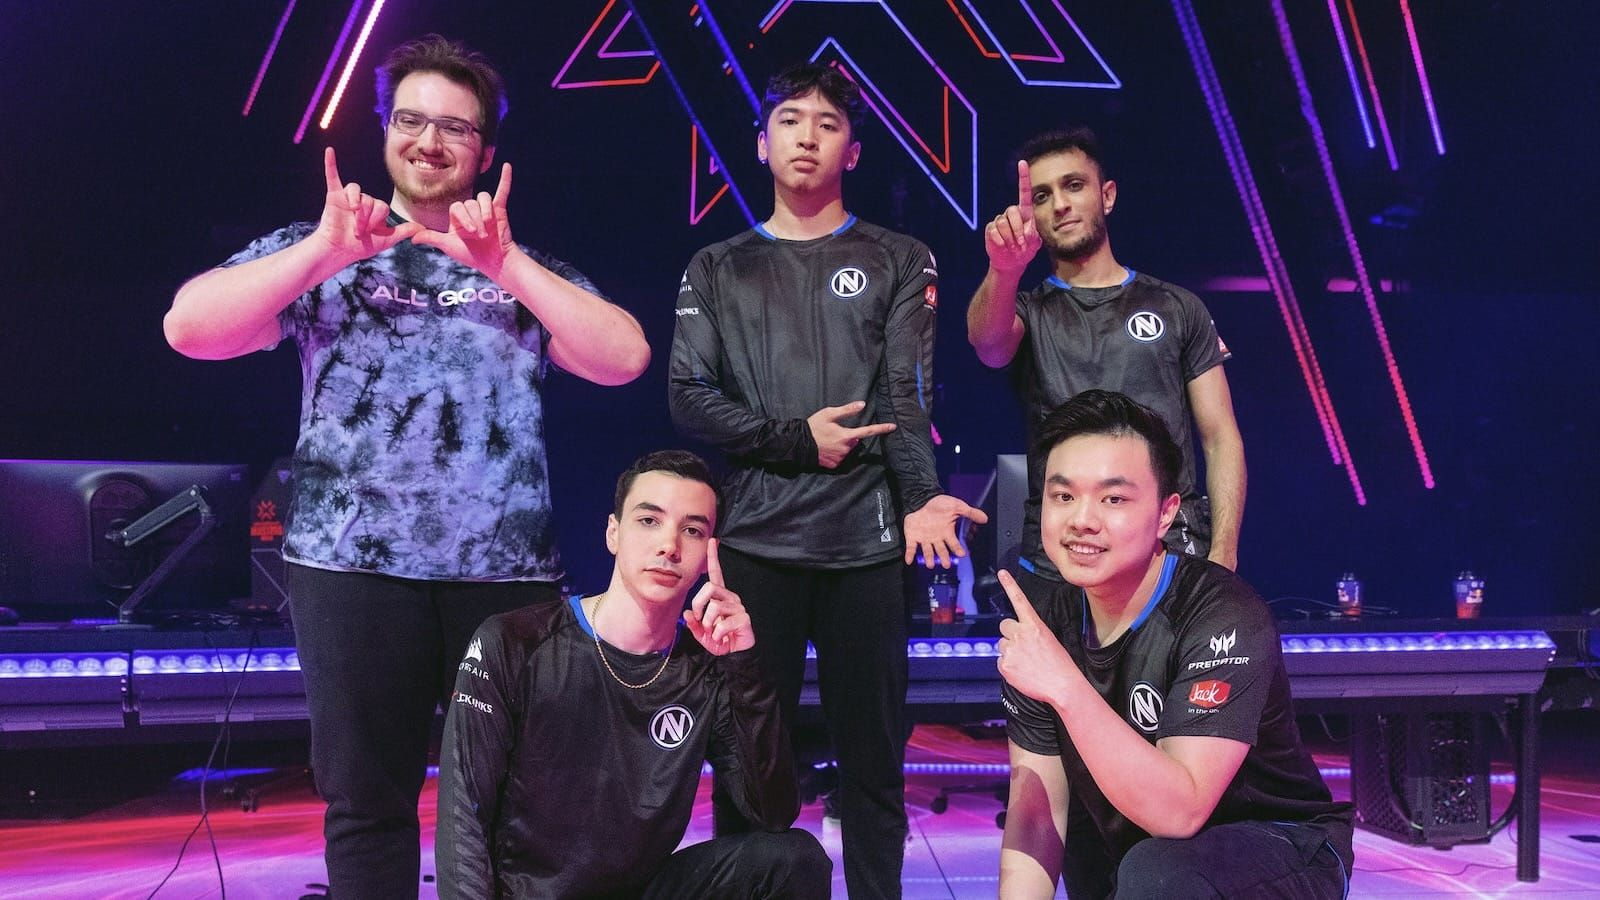 Envy Valorant team pose on stage after win at Masters Berlin tournament